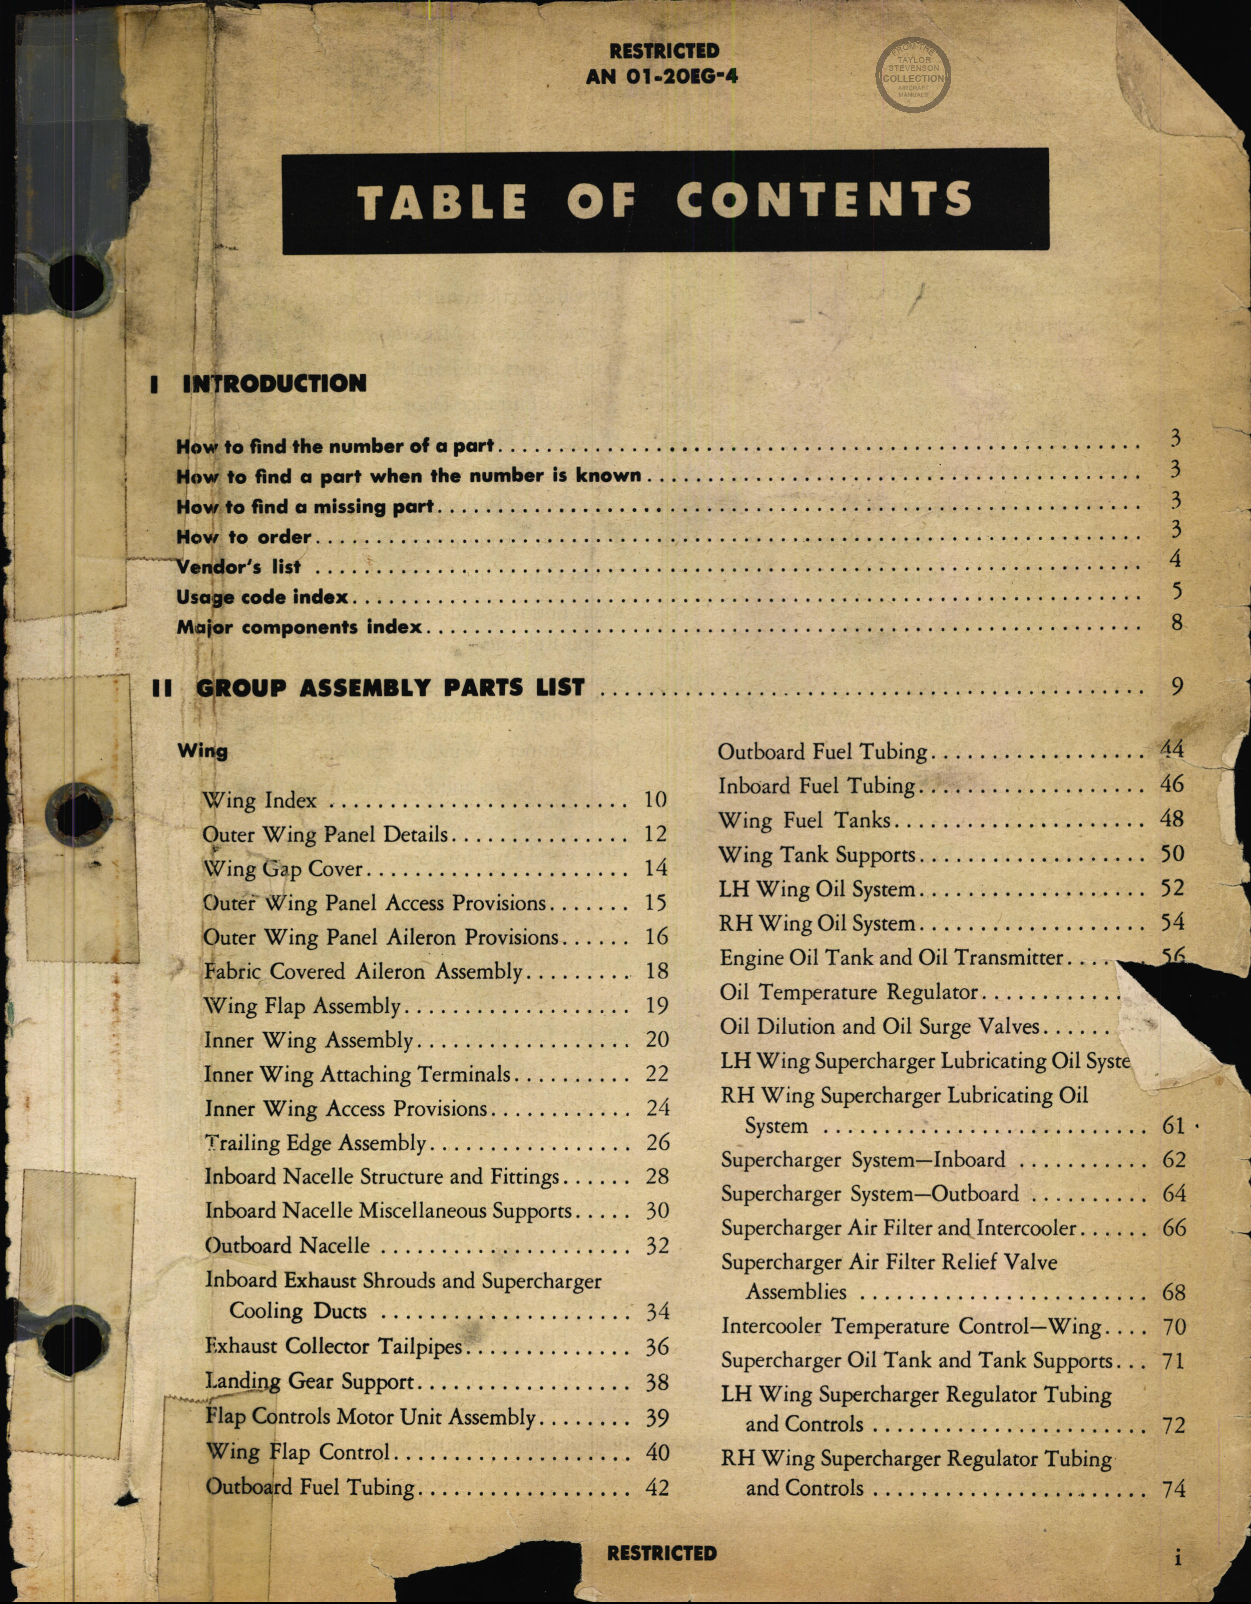 Sample page 1 from AirCorps Library document: Parts Catalog - B-17